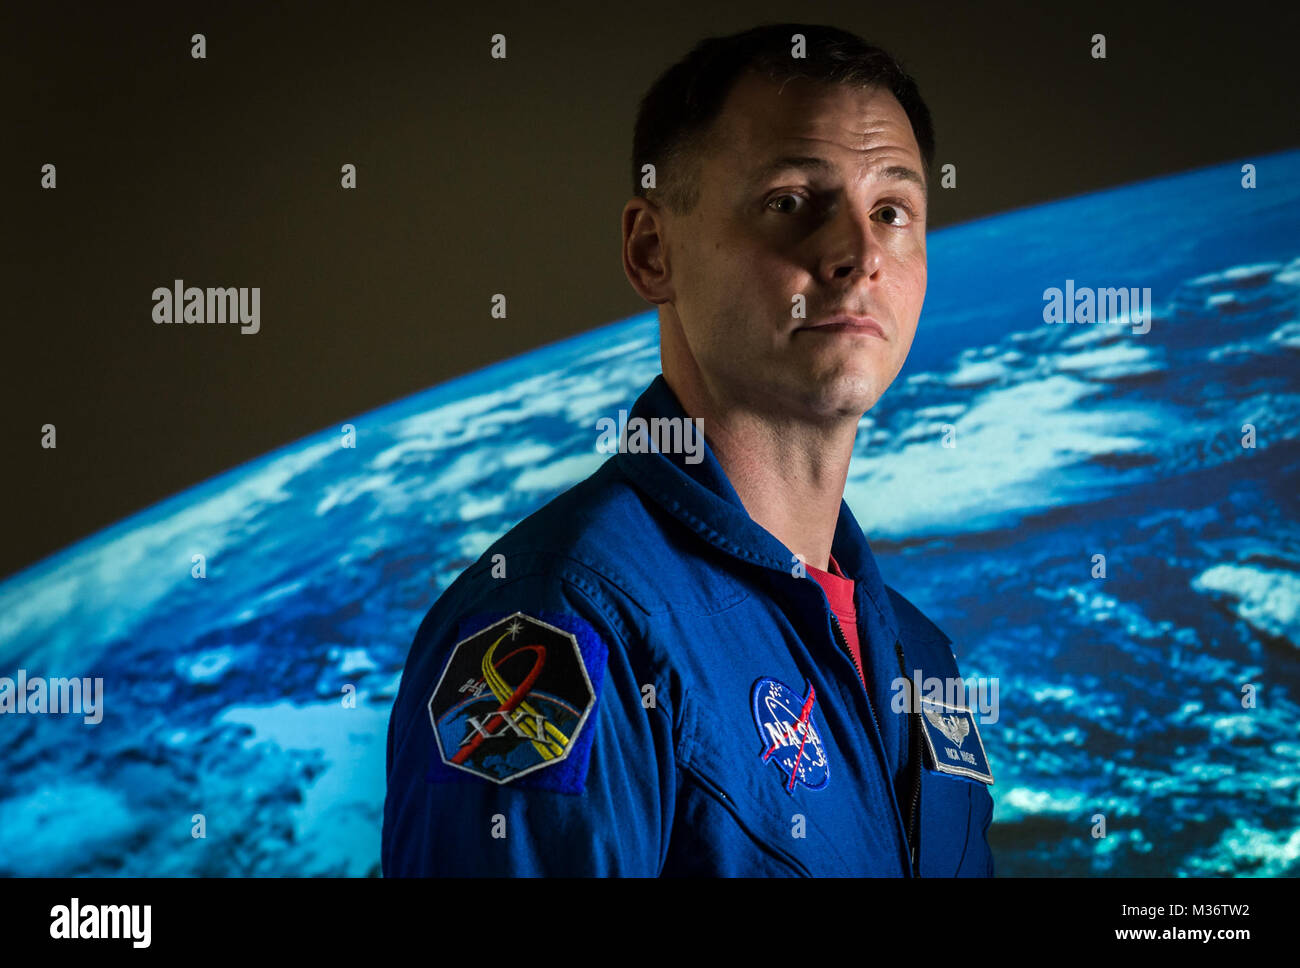 Astronaut Col. Tyler 'Nick' Hague is shown at Johnson Space Flight Center in Houston, Tex., Apr. 26, 2017, - Stock Image